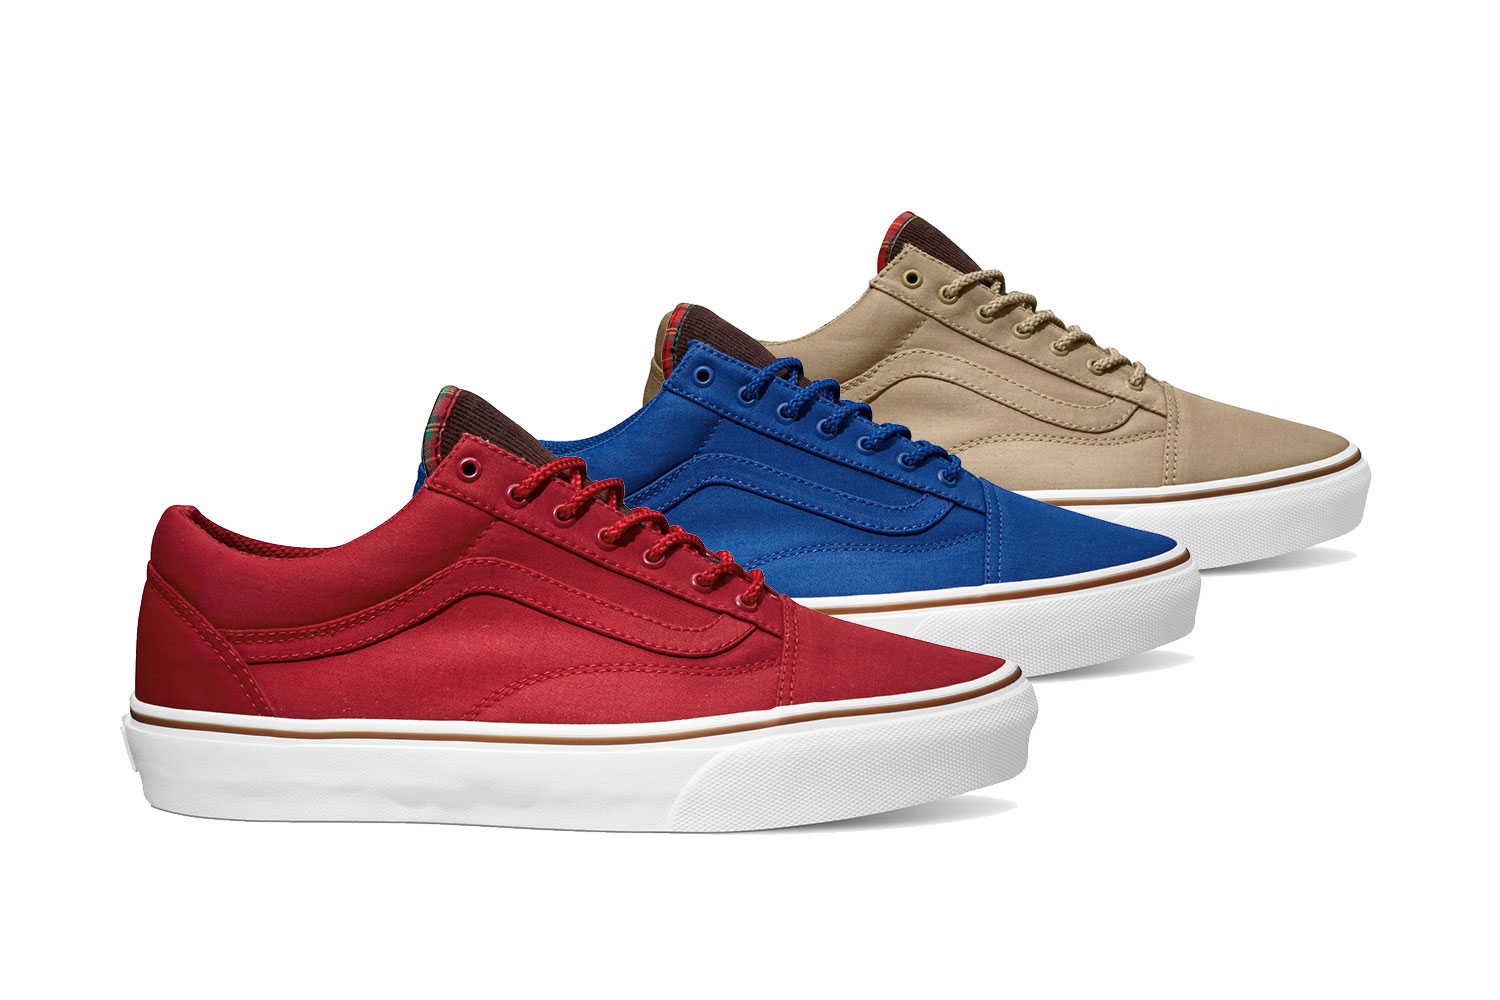 Vault-by-Vans_OG-Old-Skool-LX_Vansguard-colorways-for-Spring-2014